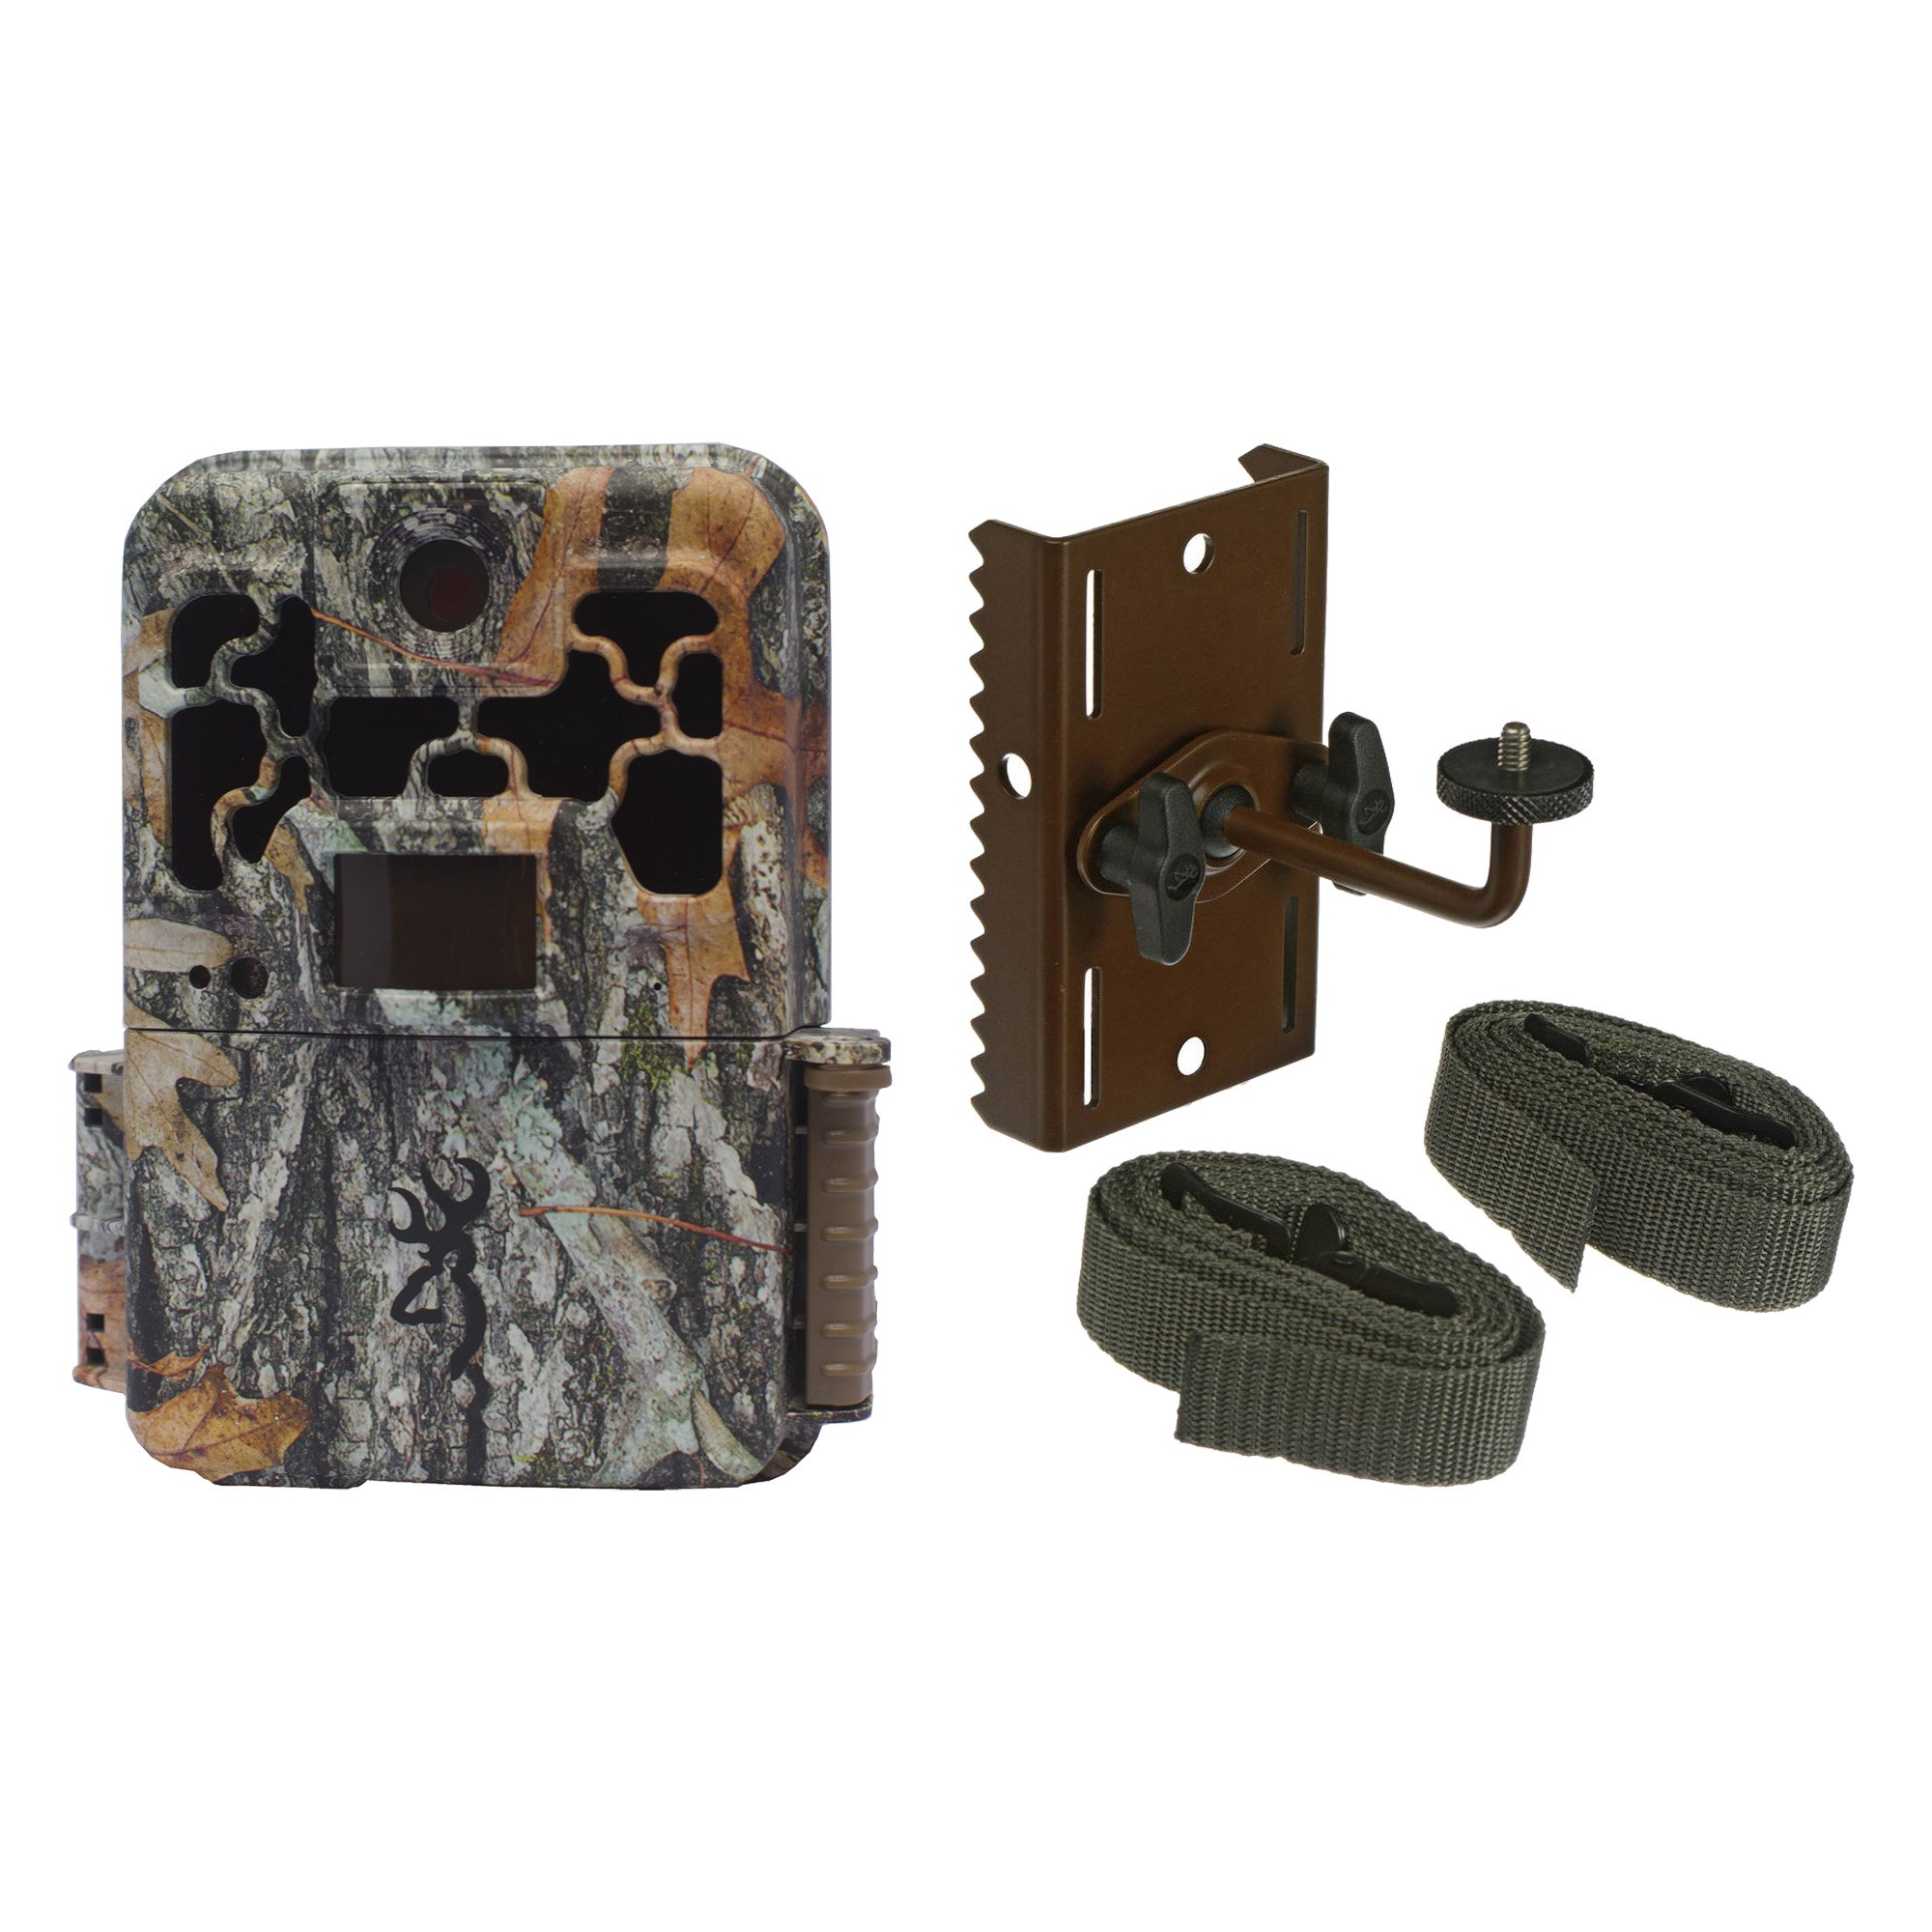 Browning Trail Cameras Spec Ops FHD Extreme 20MP Game Camera + Gimbal Tree Mount by Browning Trail Cameras